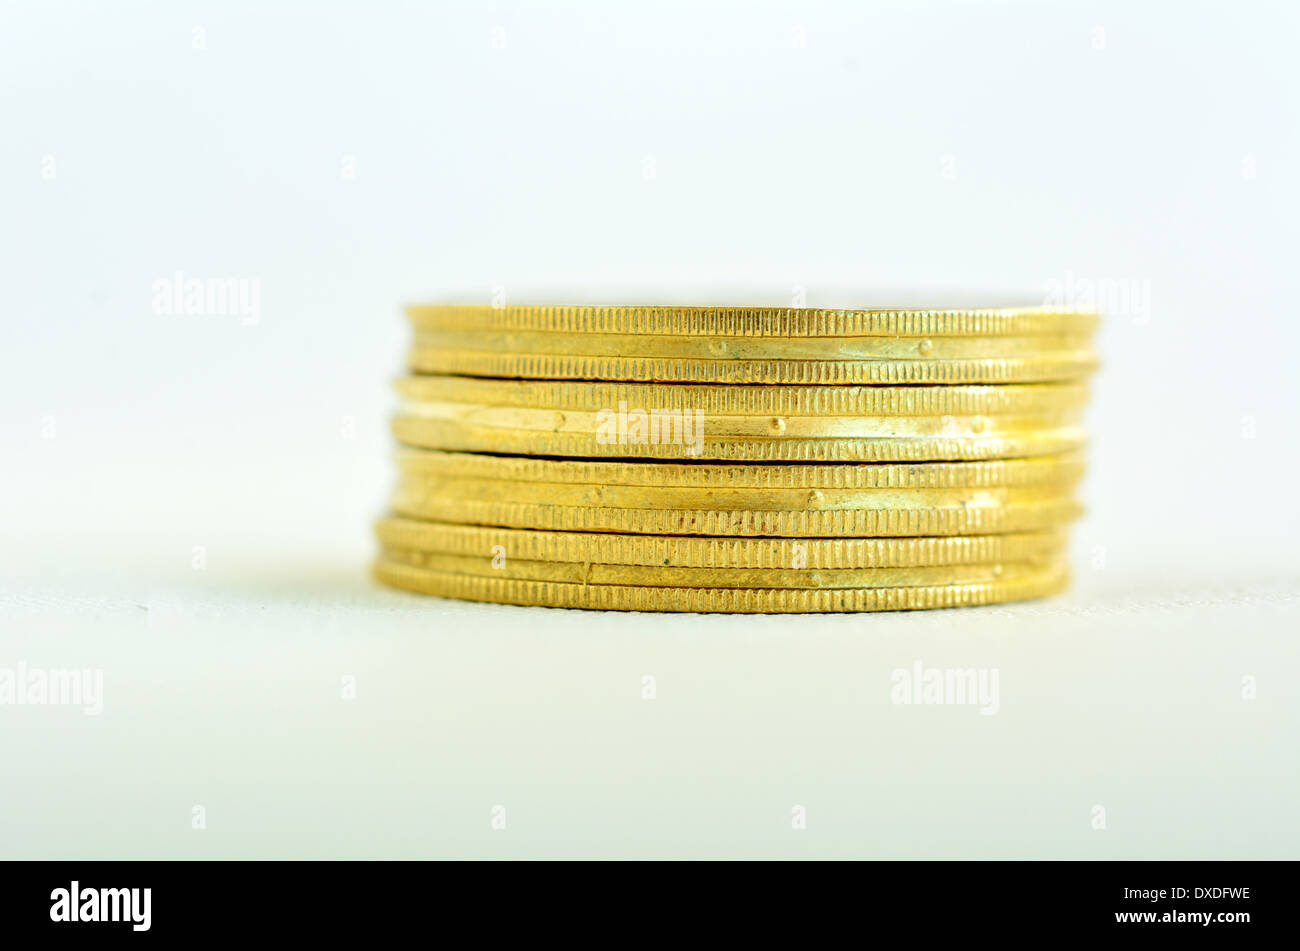 One small Golden gold coins stack isolated on white background. Concept photo of bank, money, banking, finance, economy, - Stock Image